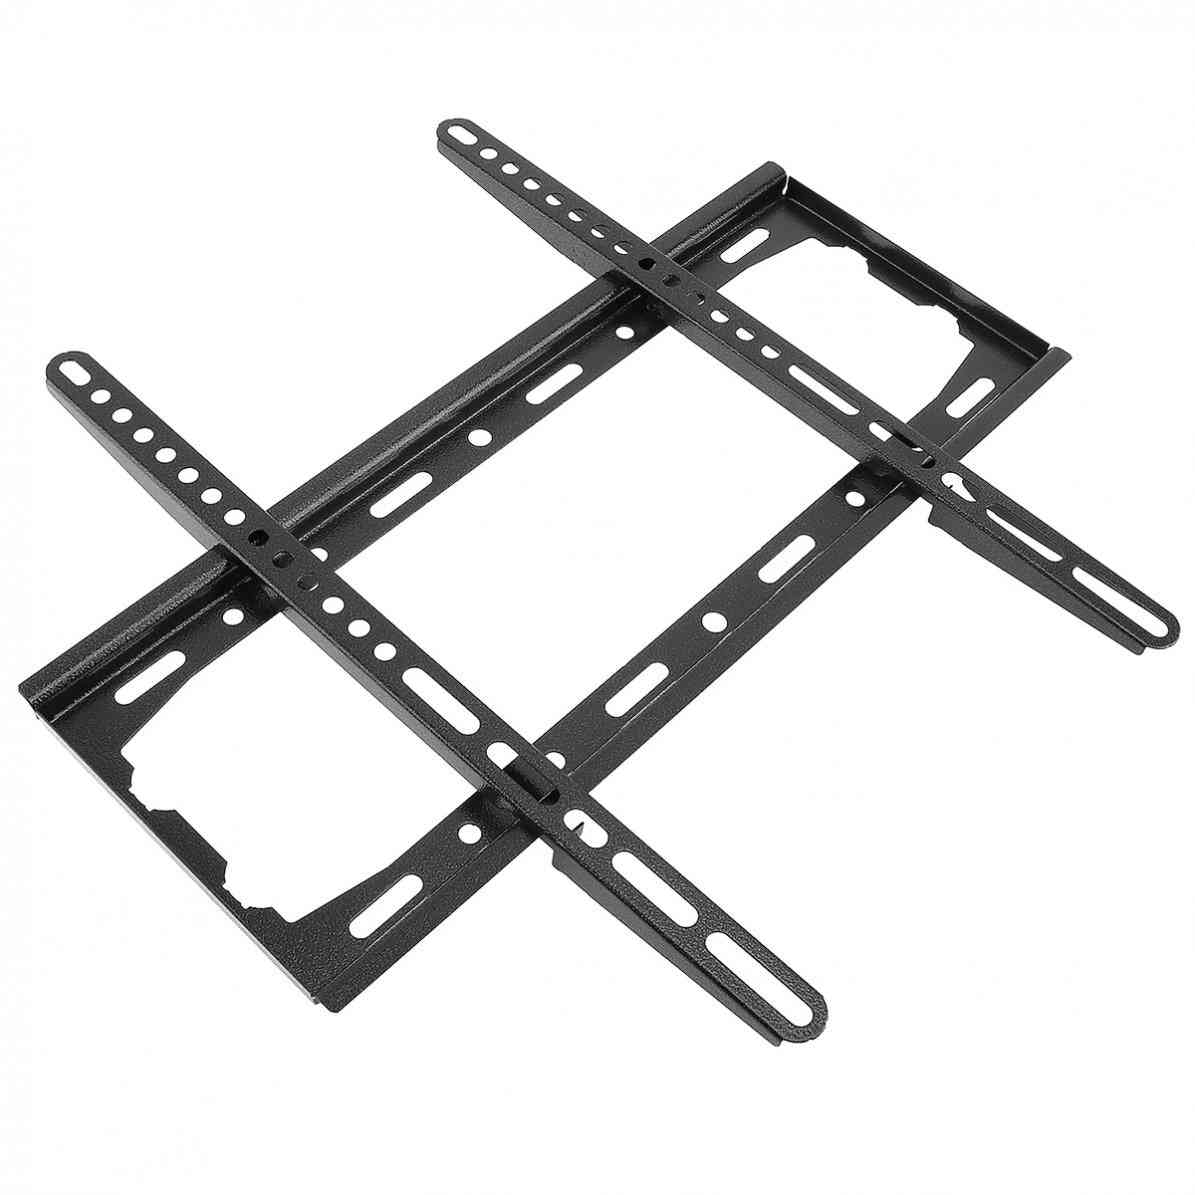 Universal Wall Mount Tv Bracket, Fixed Flat Panel For 26-55 Inch Lcd/led Monitor